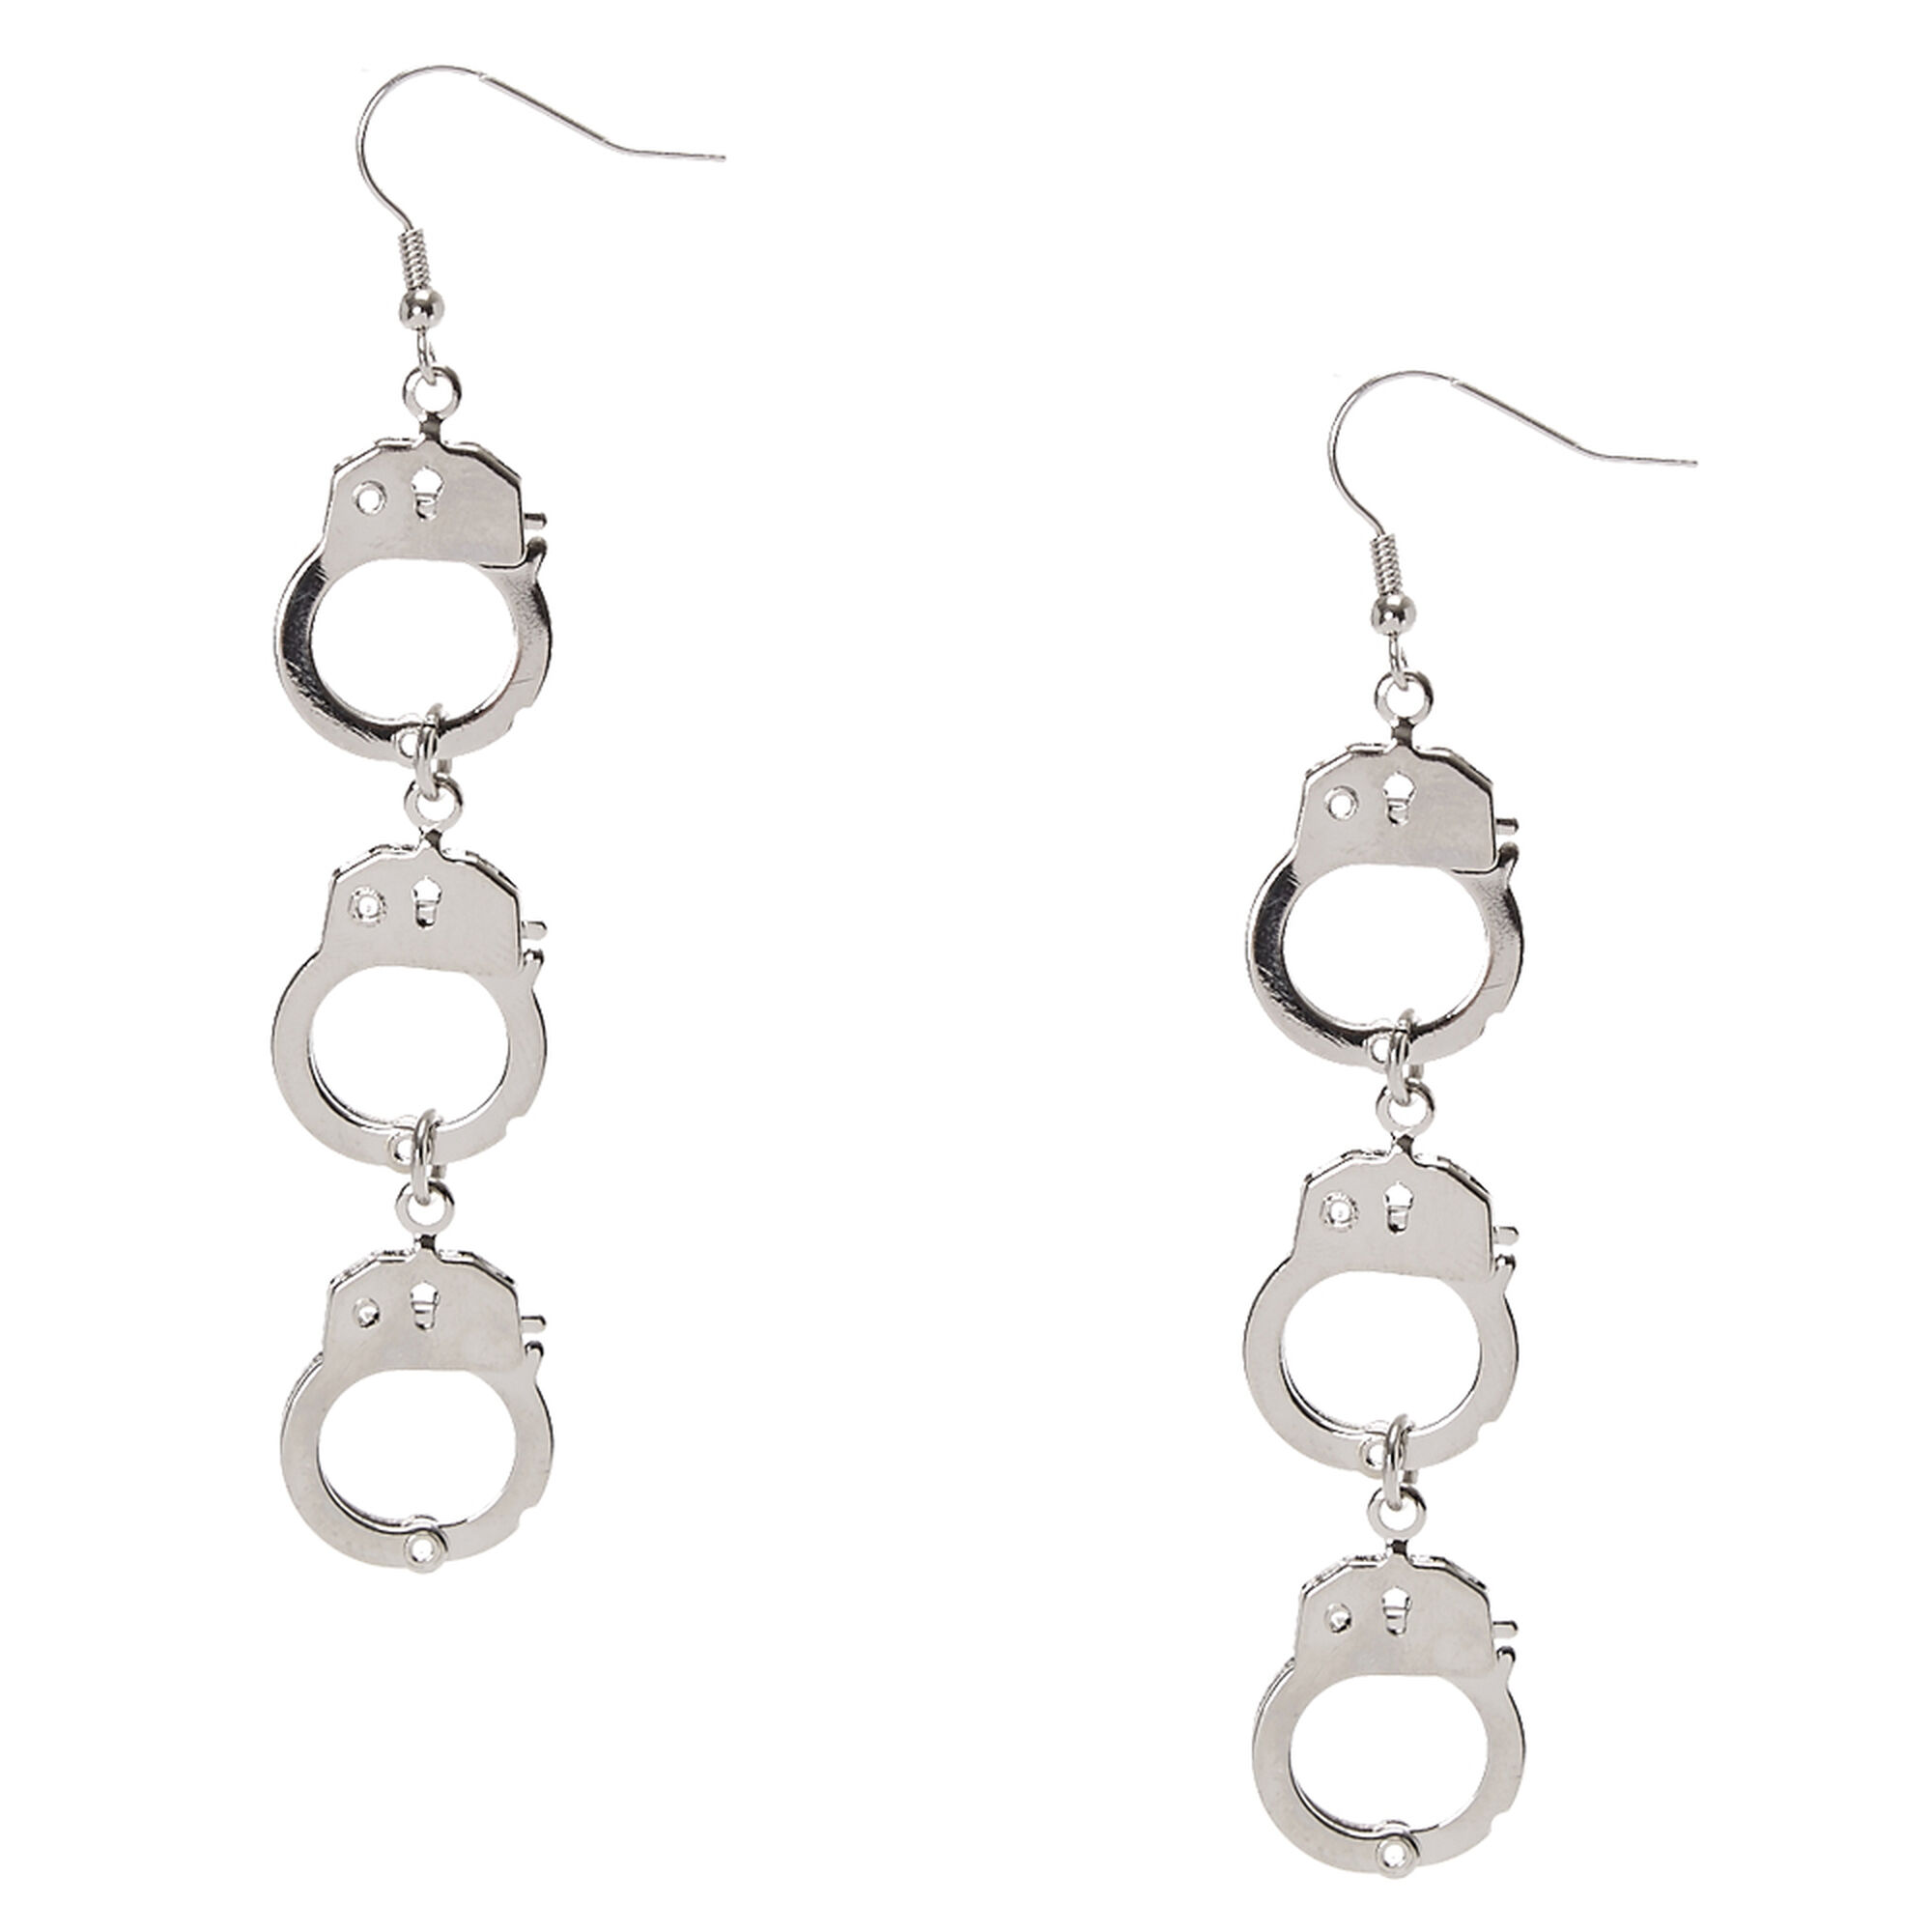 Silver Handcuff Chain Drop Earrings